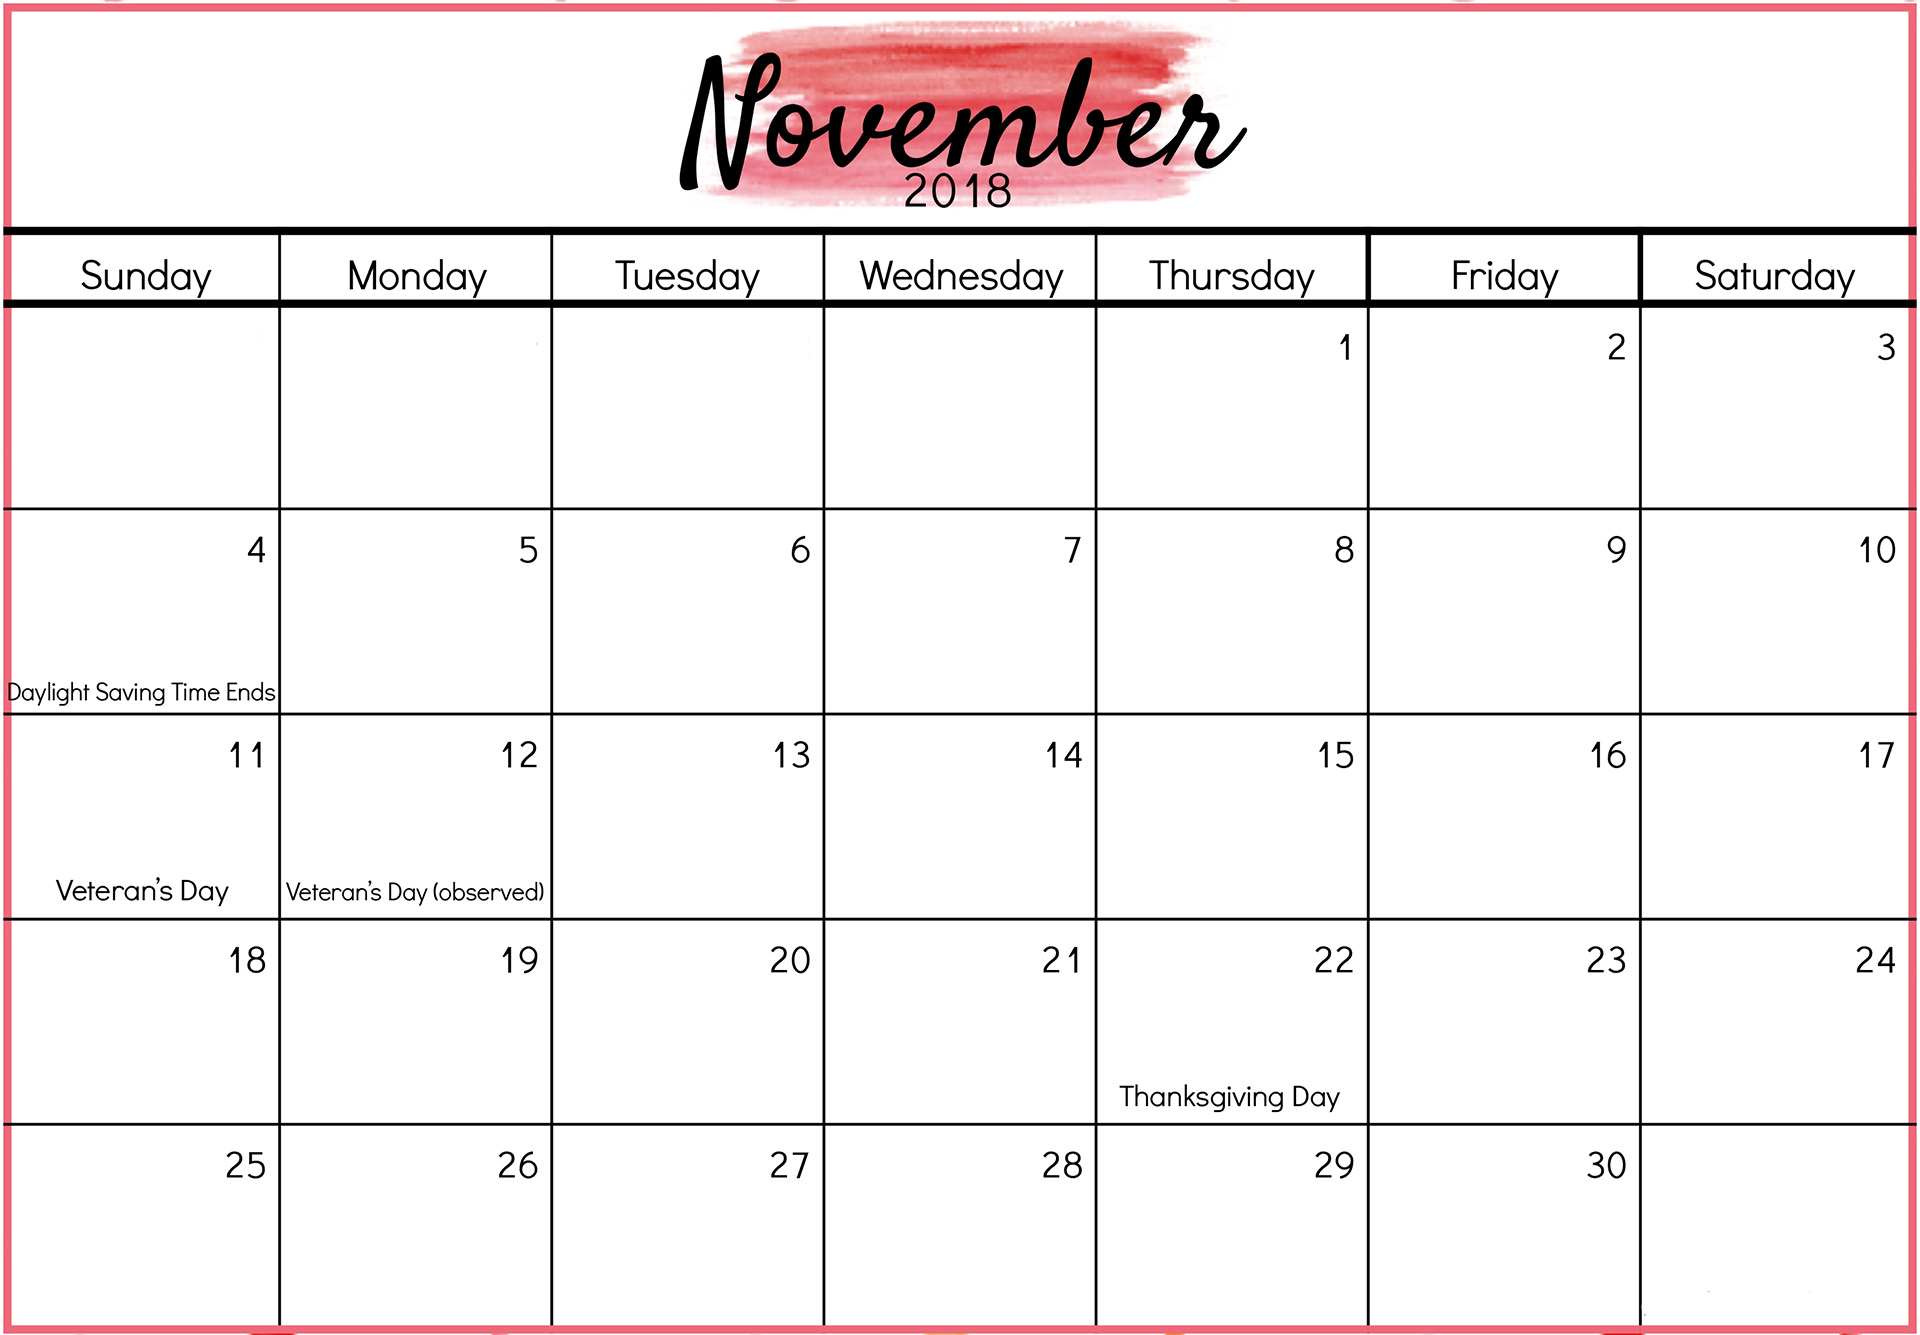 November Calendar Printable Holidays Blank November 2018 Calendar Printable Template